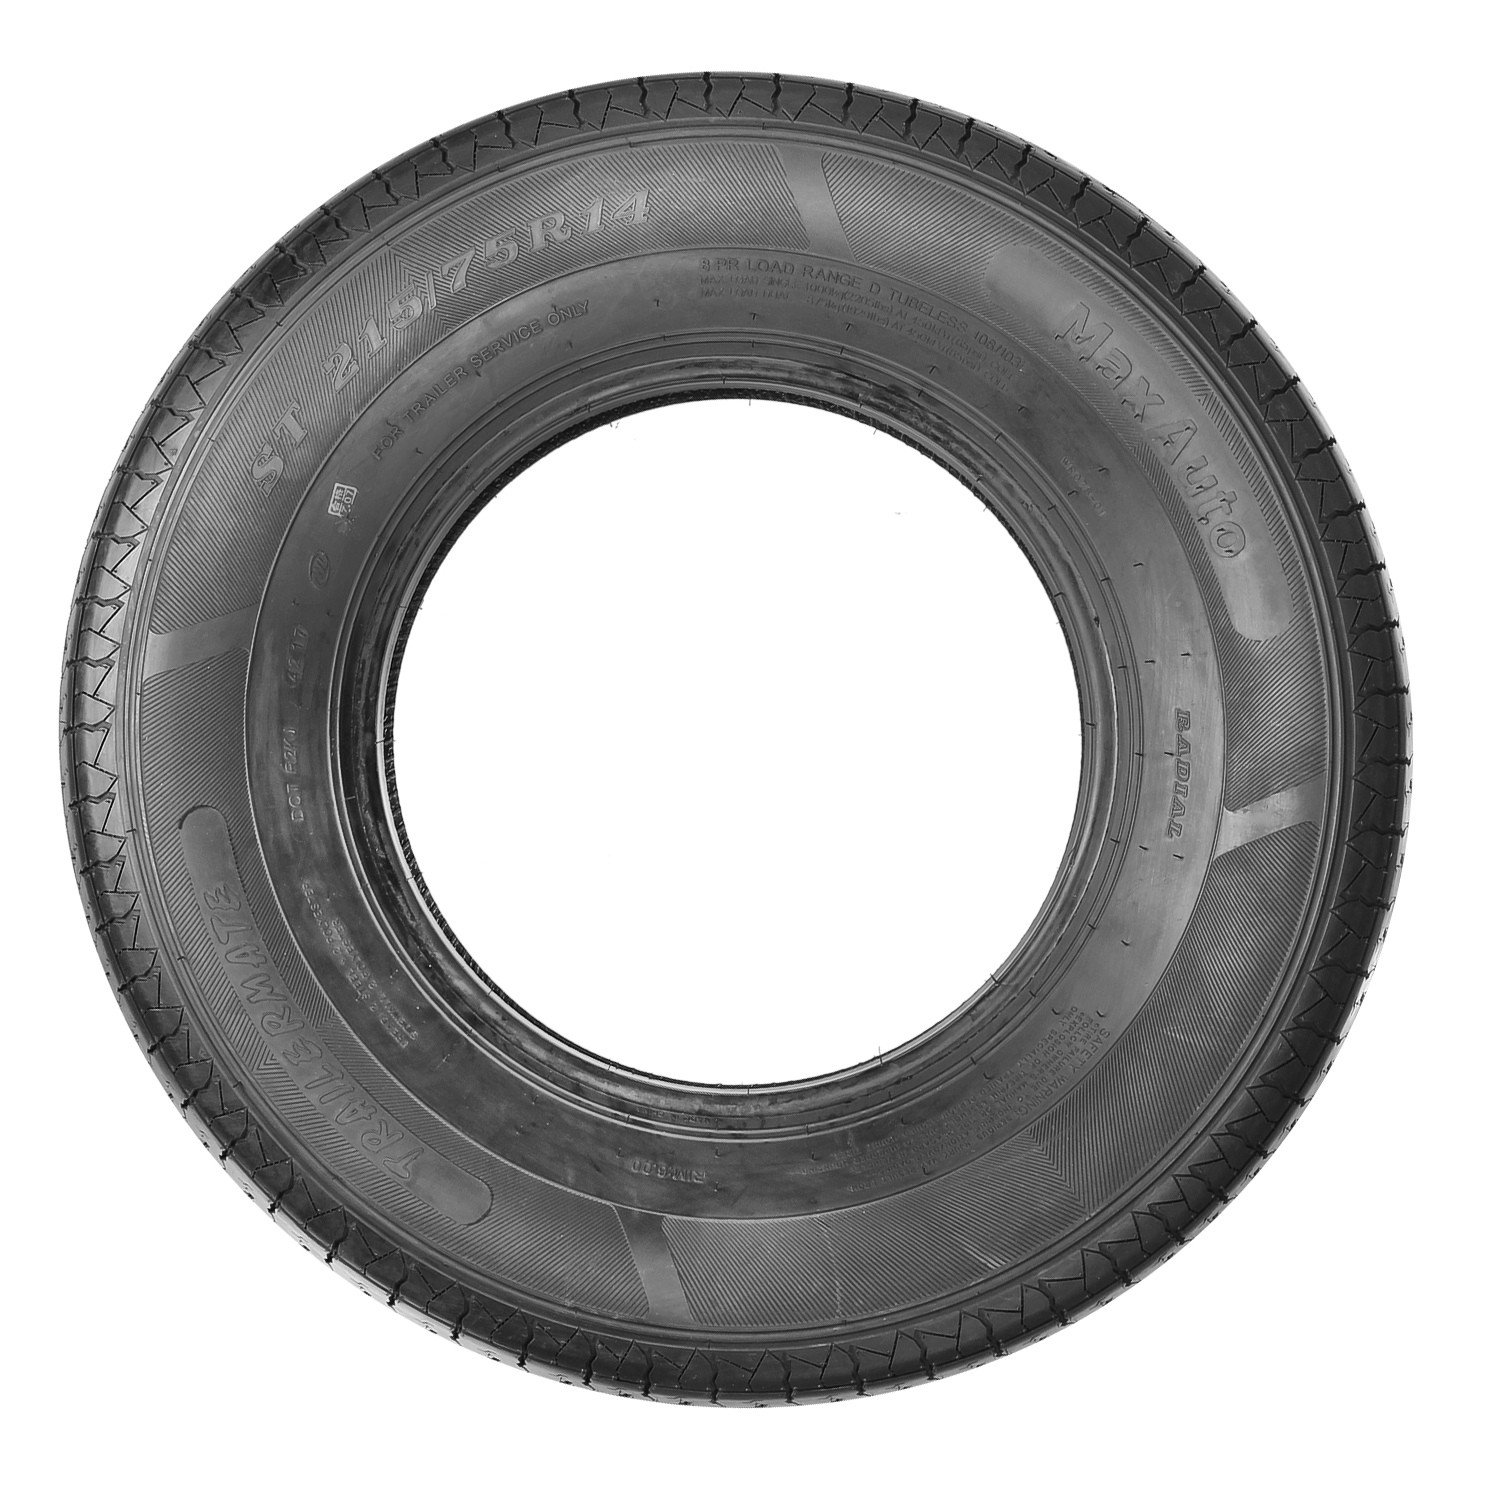 ST215/75R14 Load Range D MaxAuto Radial Trailer Tires ST215/75R-14 8Ply(Pack of 4) by MaxAuto (Image #6)